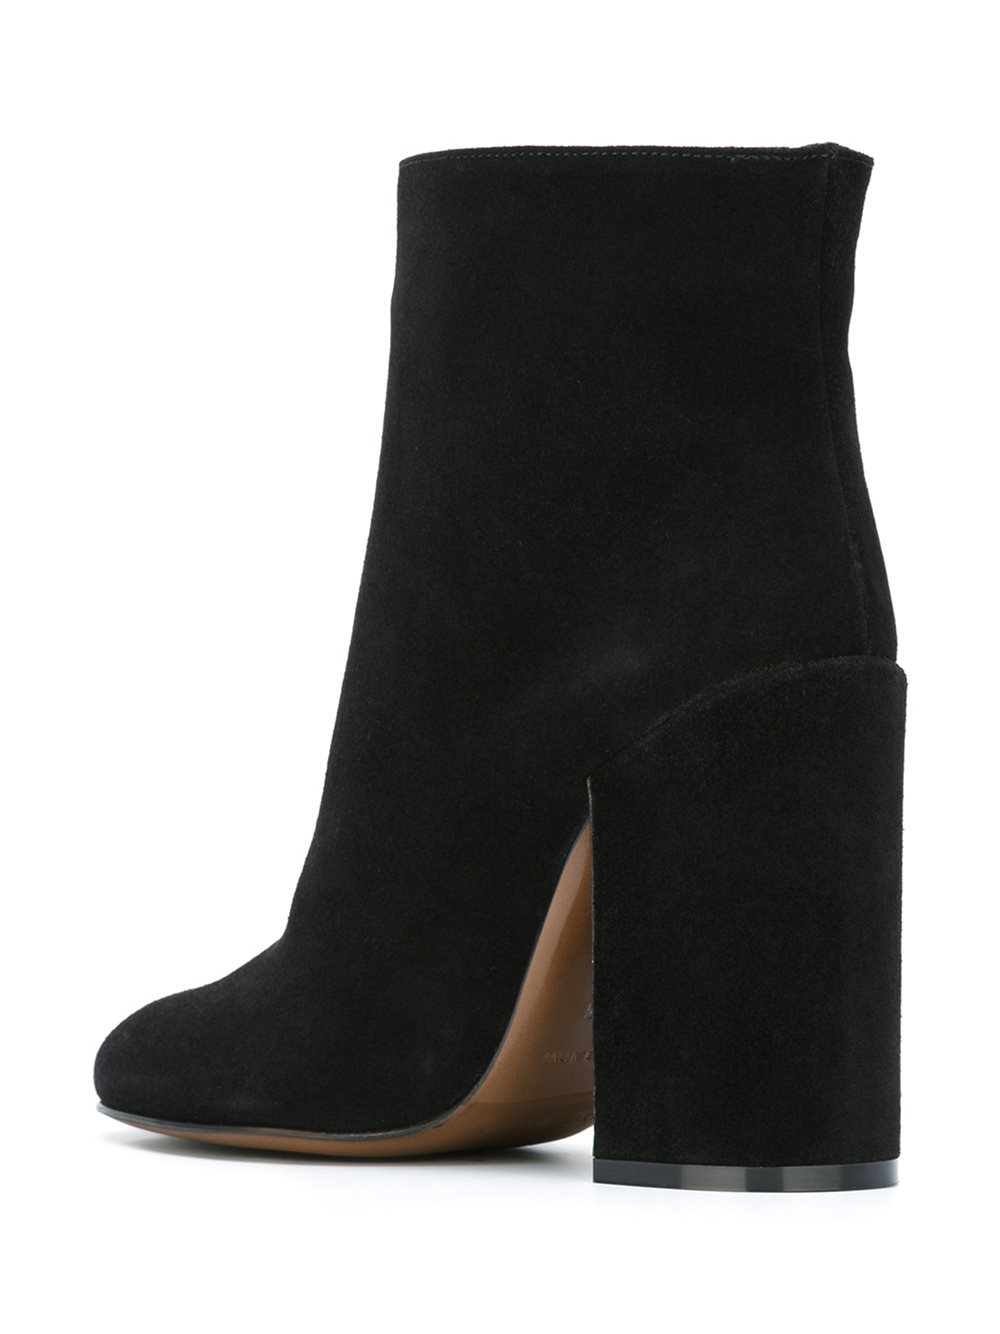 L'Autre Chose Leather Chunky Heel Ankle Boots in Black